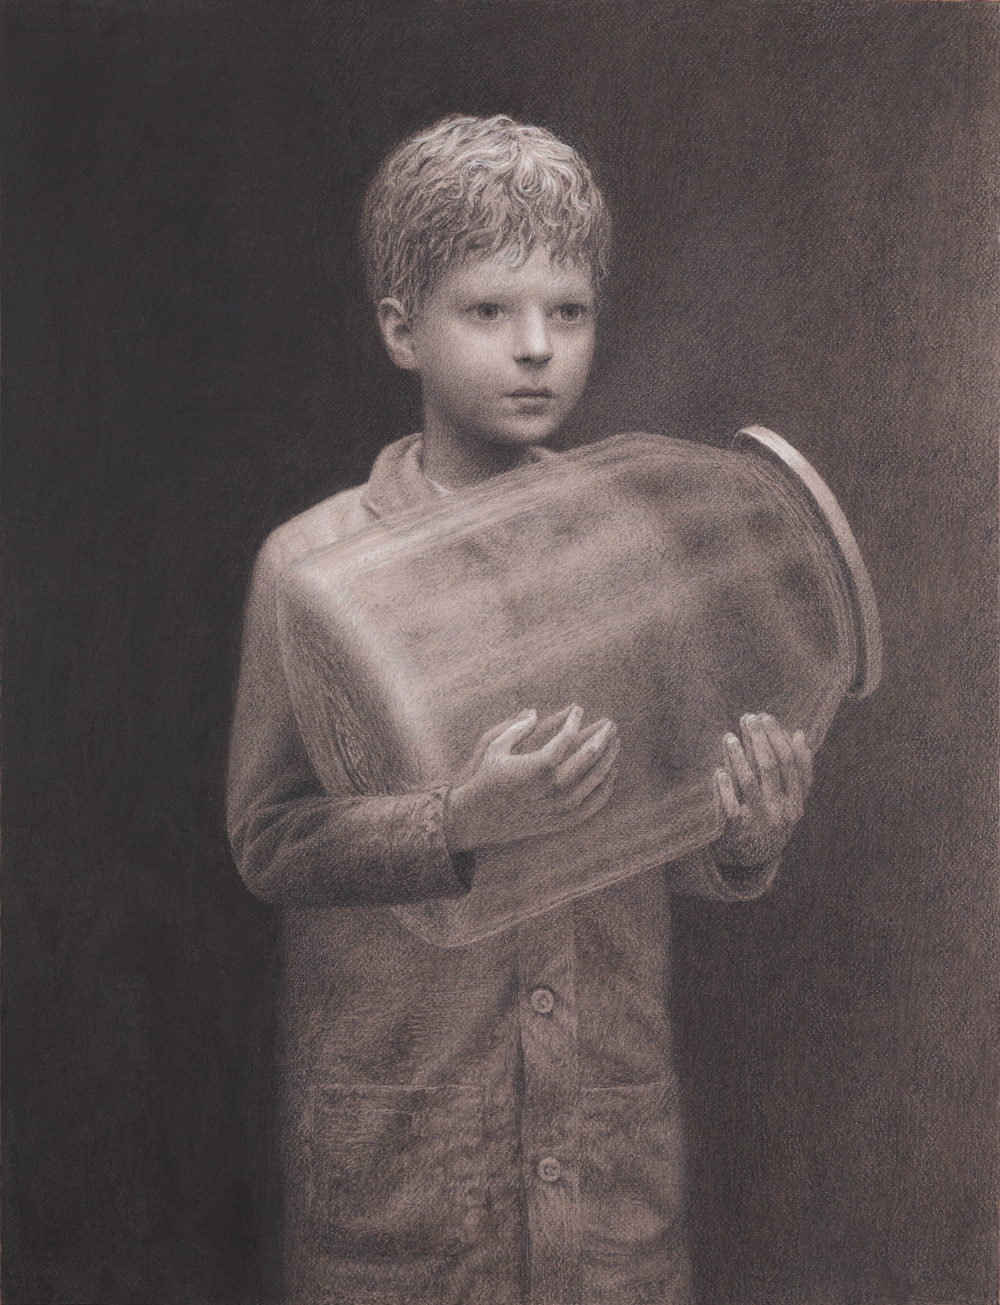 Thomas , charcoal on paper, 25.5 x 19.5 in / 65 x 50 cm, 2011